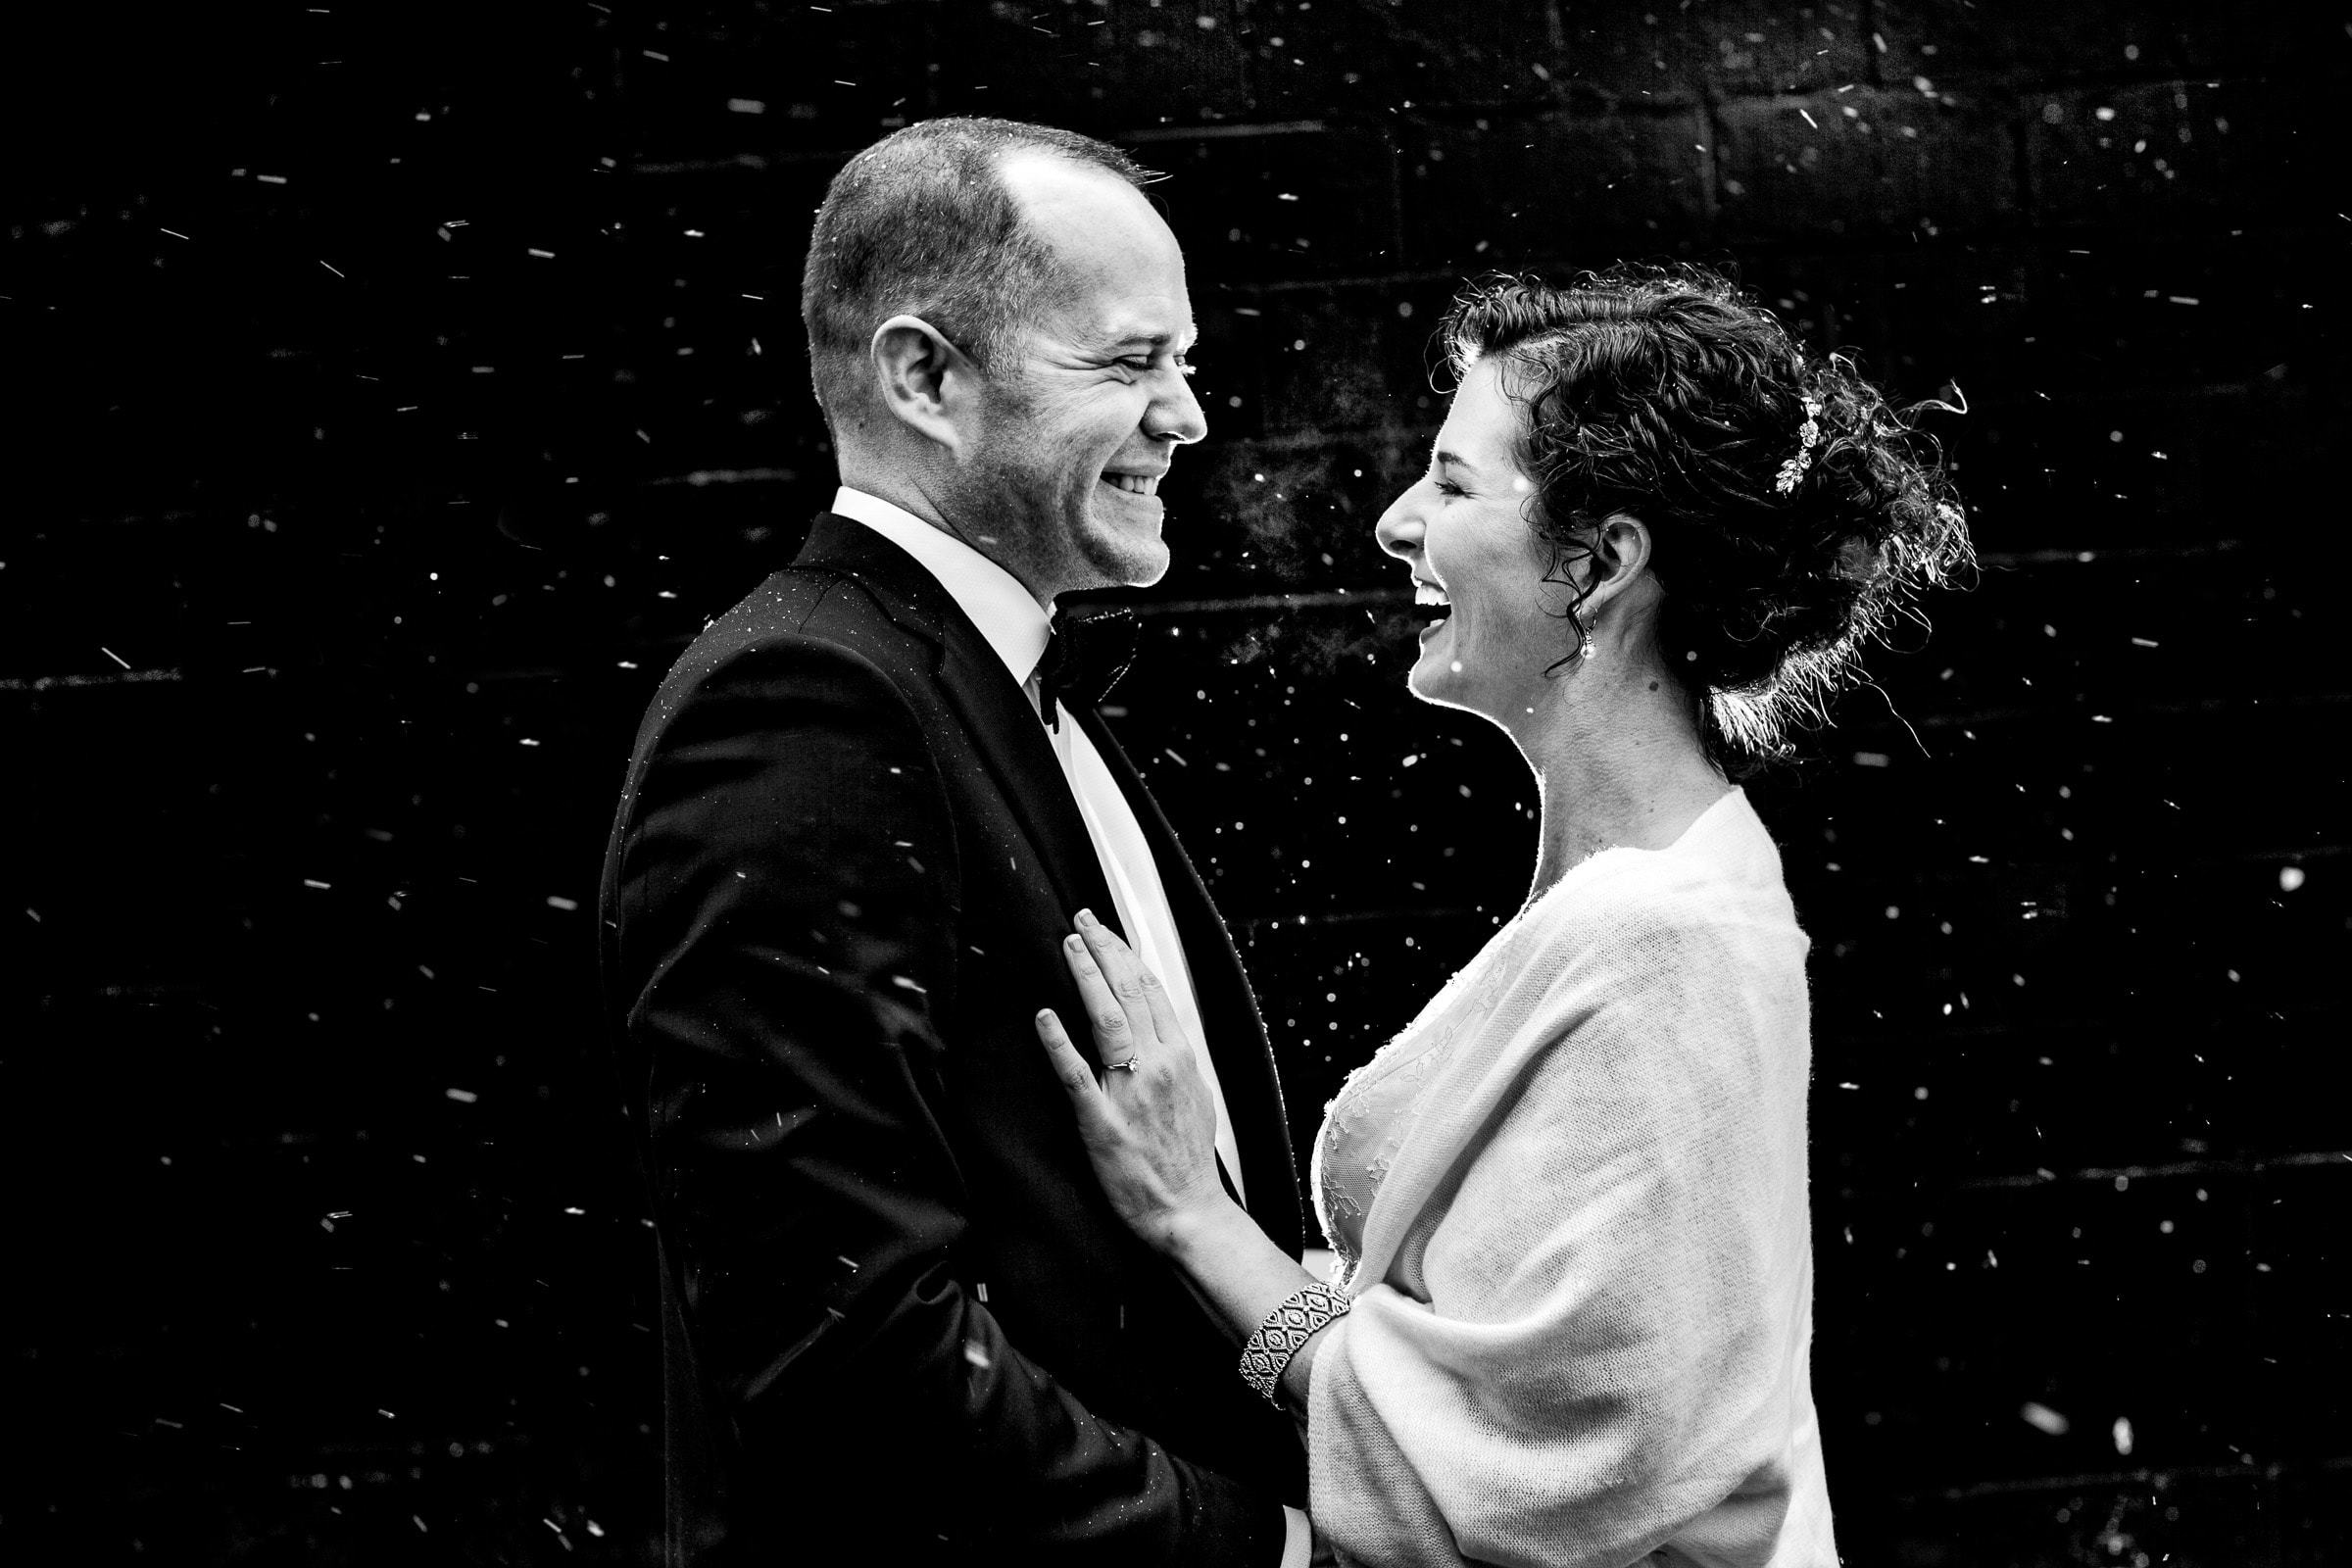 Bride and Groom laughing in the snow after their Kansas City elopement ceremony at The Pilgrim Chapel.